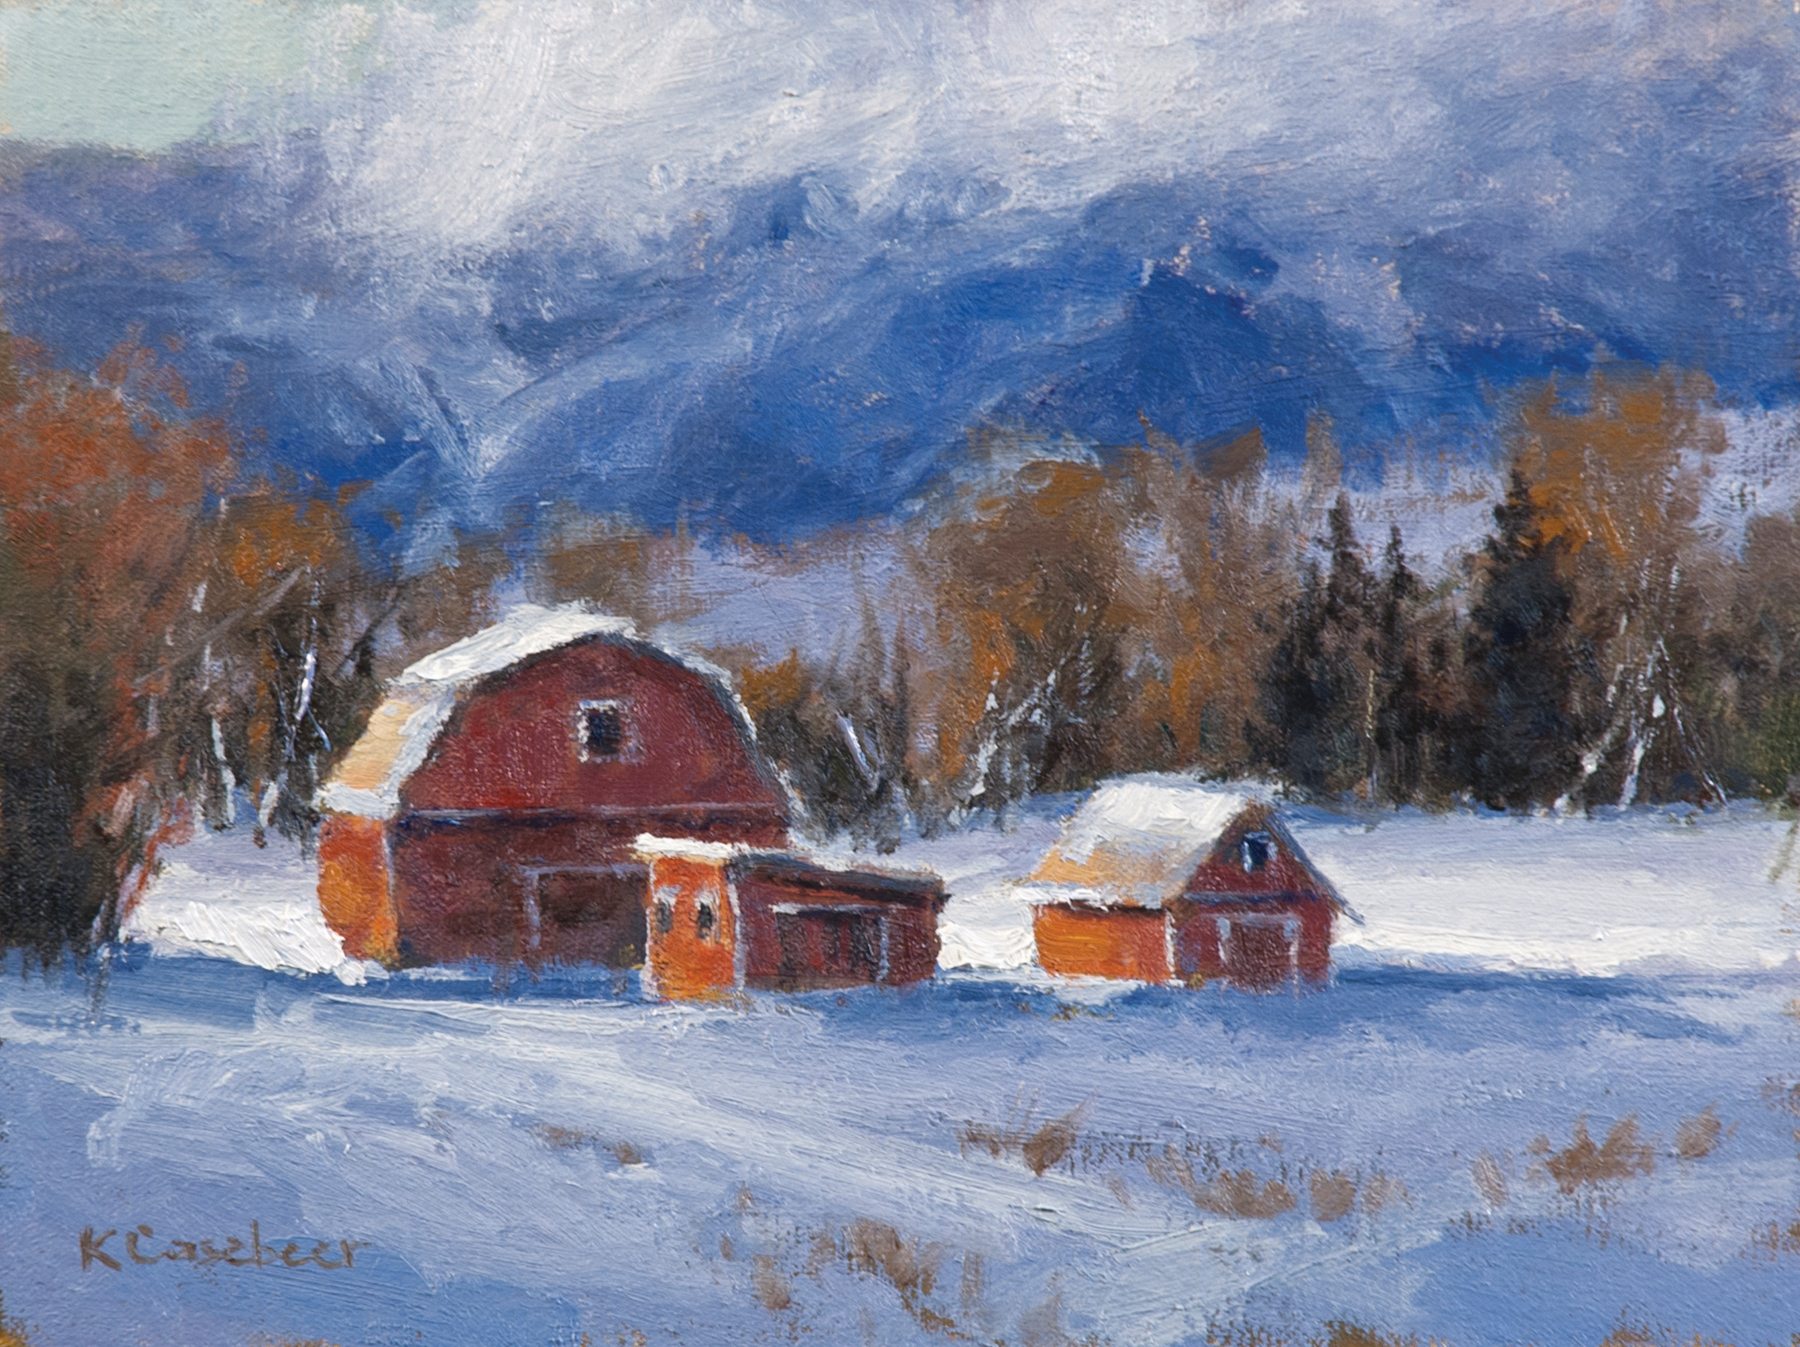 Casebeer_Yampa Valley Winter 9x12